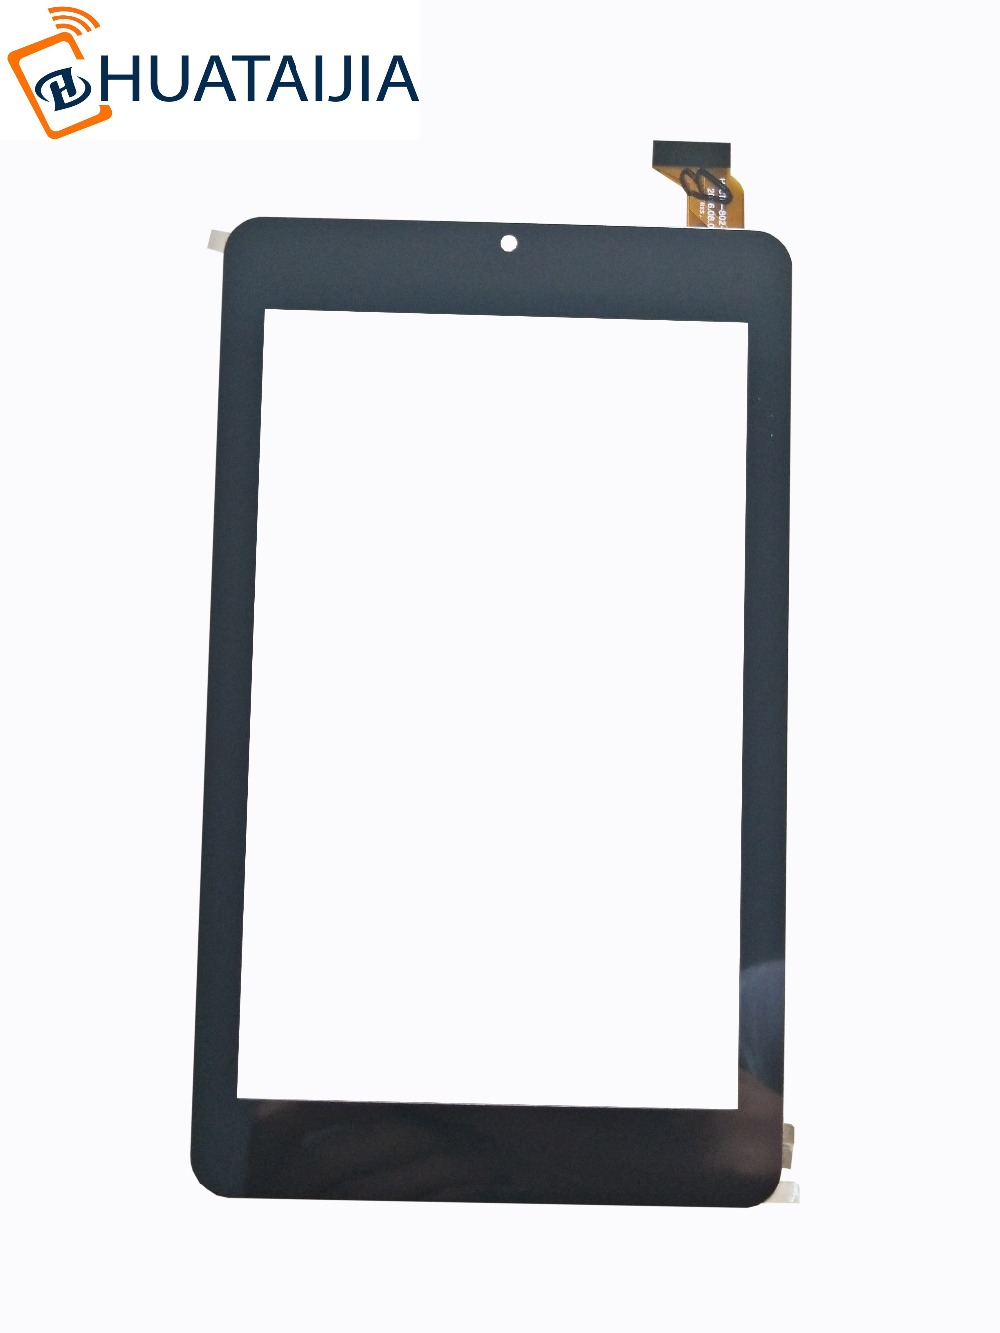 New For 7 inch Tablet SMARTBOOK S7QS touch screen panel Digitizer Glass Sensor Replacement Free Shipping new for 7 inch lark freeme x4 7 hd tablet capacitive touch screen digitizer glass touch panel sensor replacement free shipping